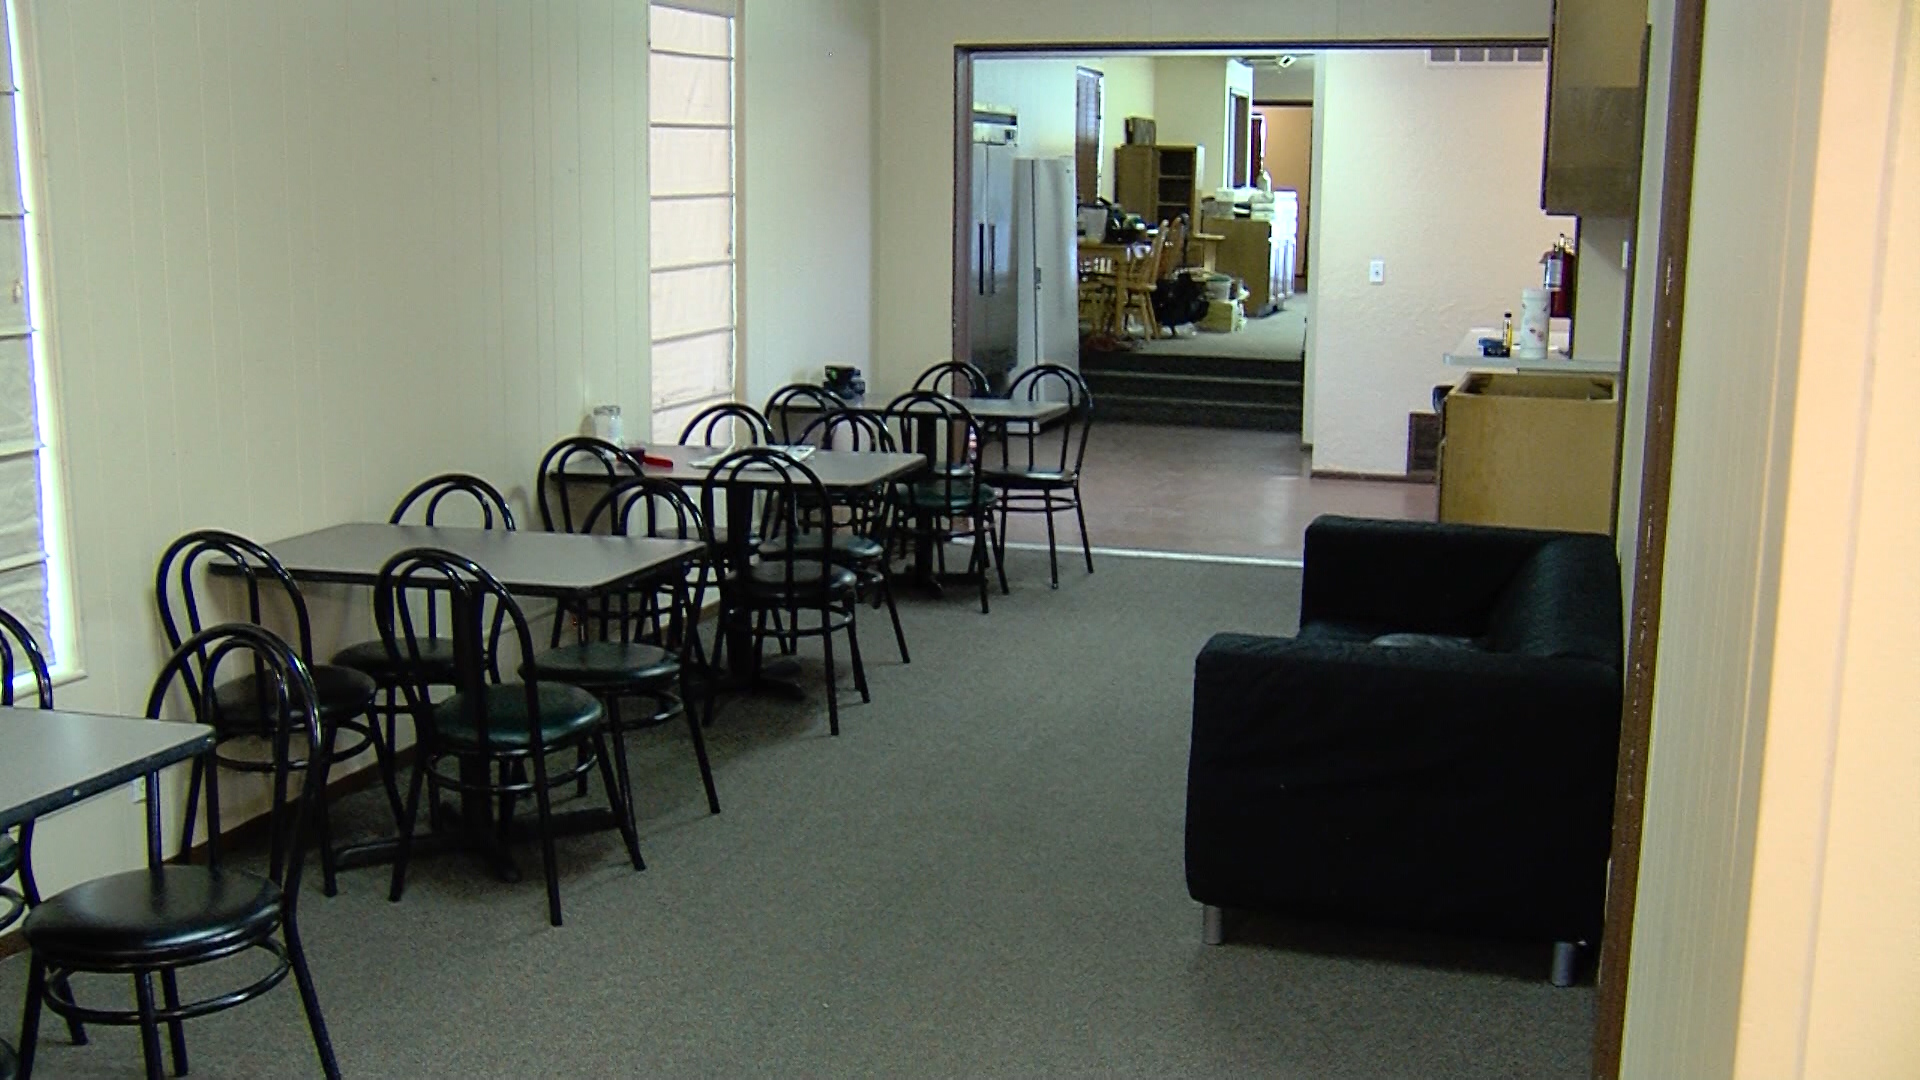 Utah 39 S First Homeless Youth Shelter Coming To Ogden